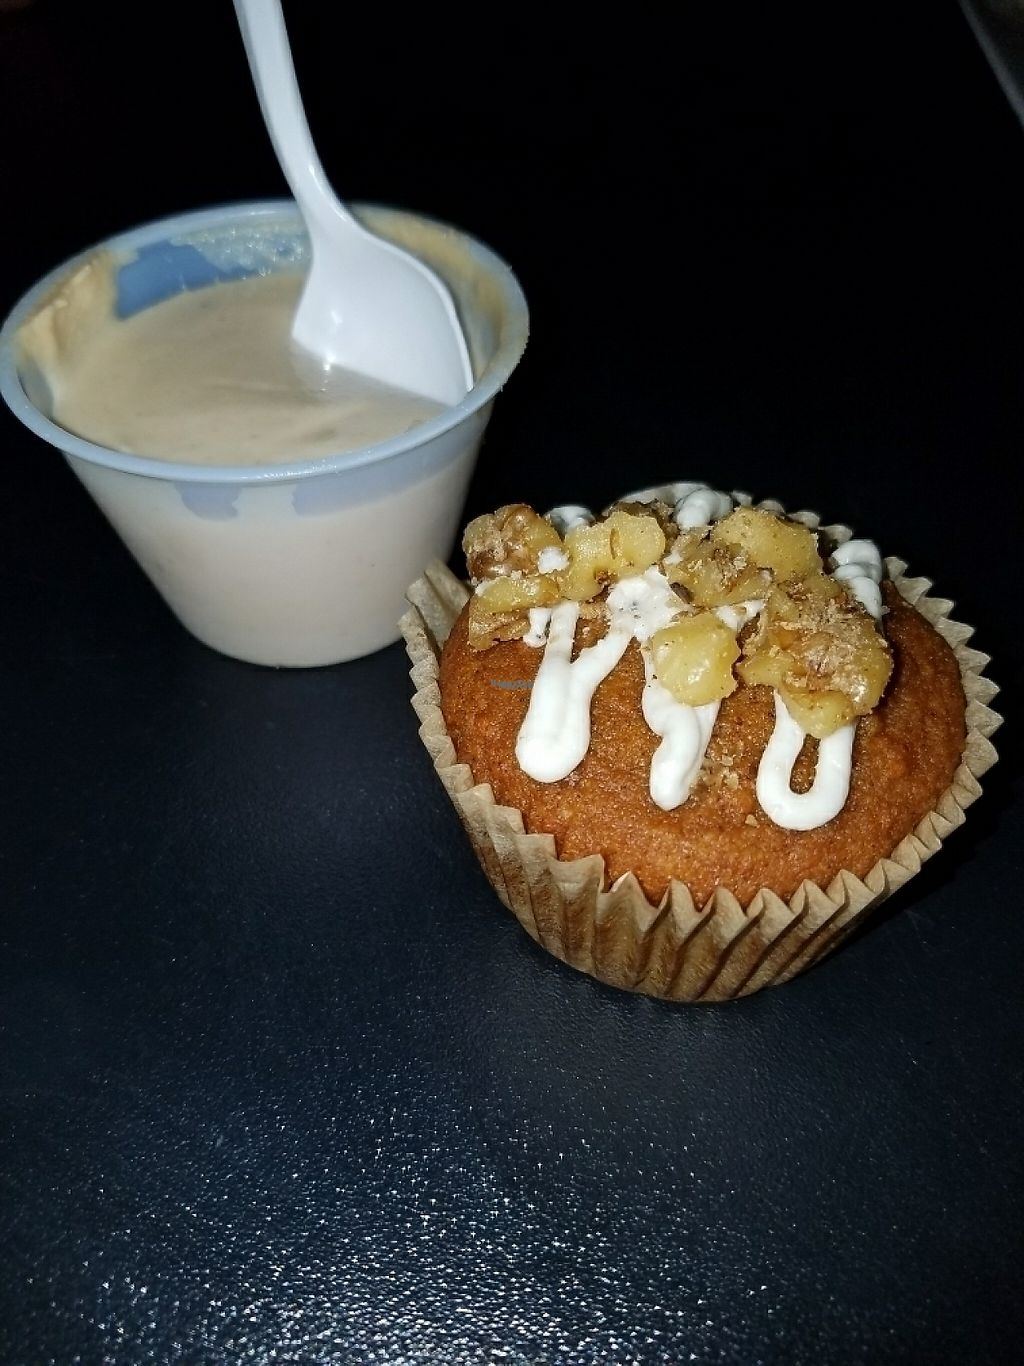 """Photo of El Punto Vegano  by <a href=""""/members/profile/RobertNava"""">RobertNava</a> <br/>Cashew pudding and Carrot cup cake <br/> April 21, 2017  - <a href='/contact/abuse/image/69301/250750'>Report</a>"""